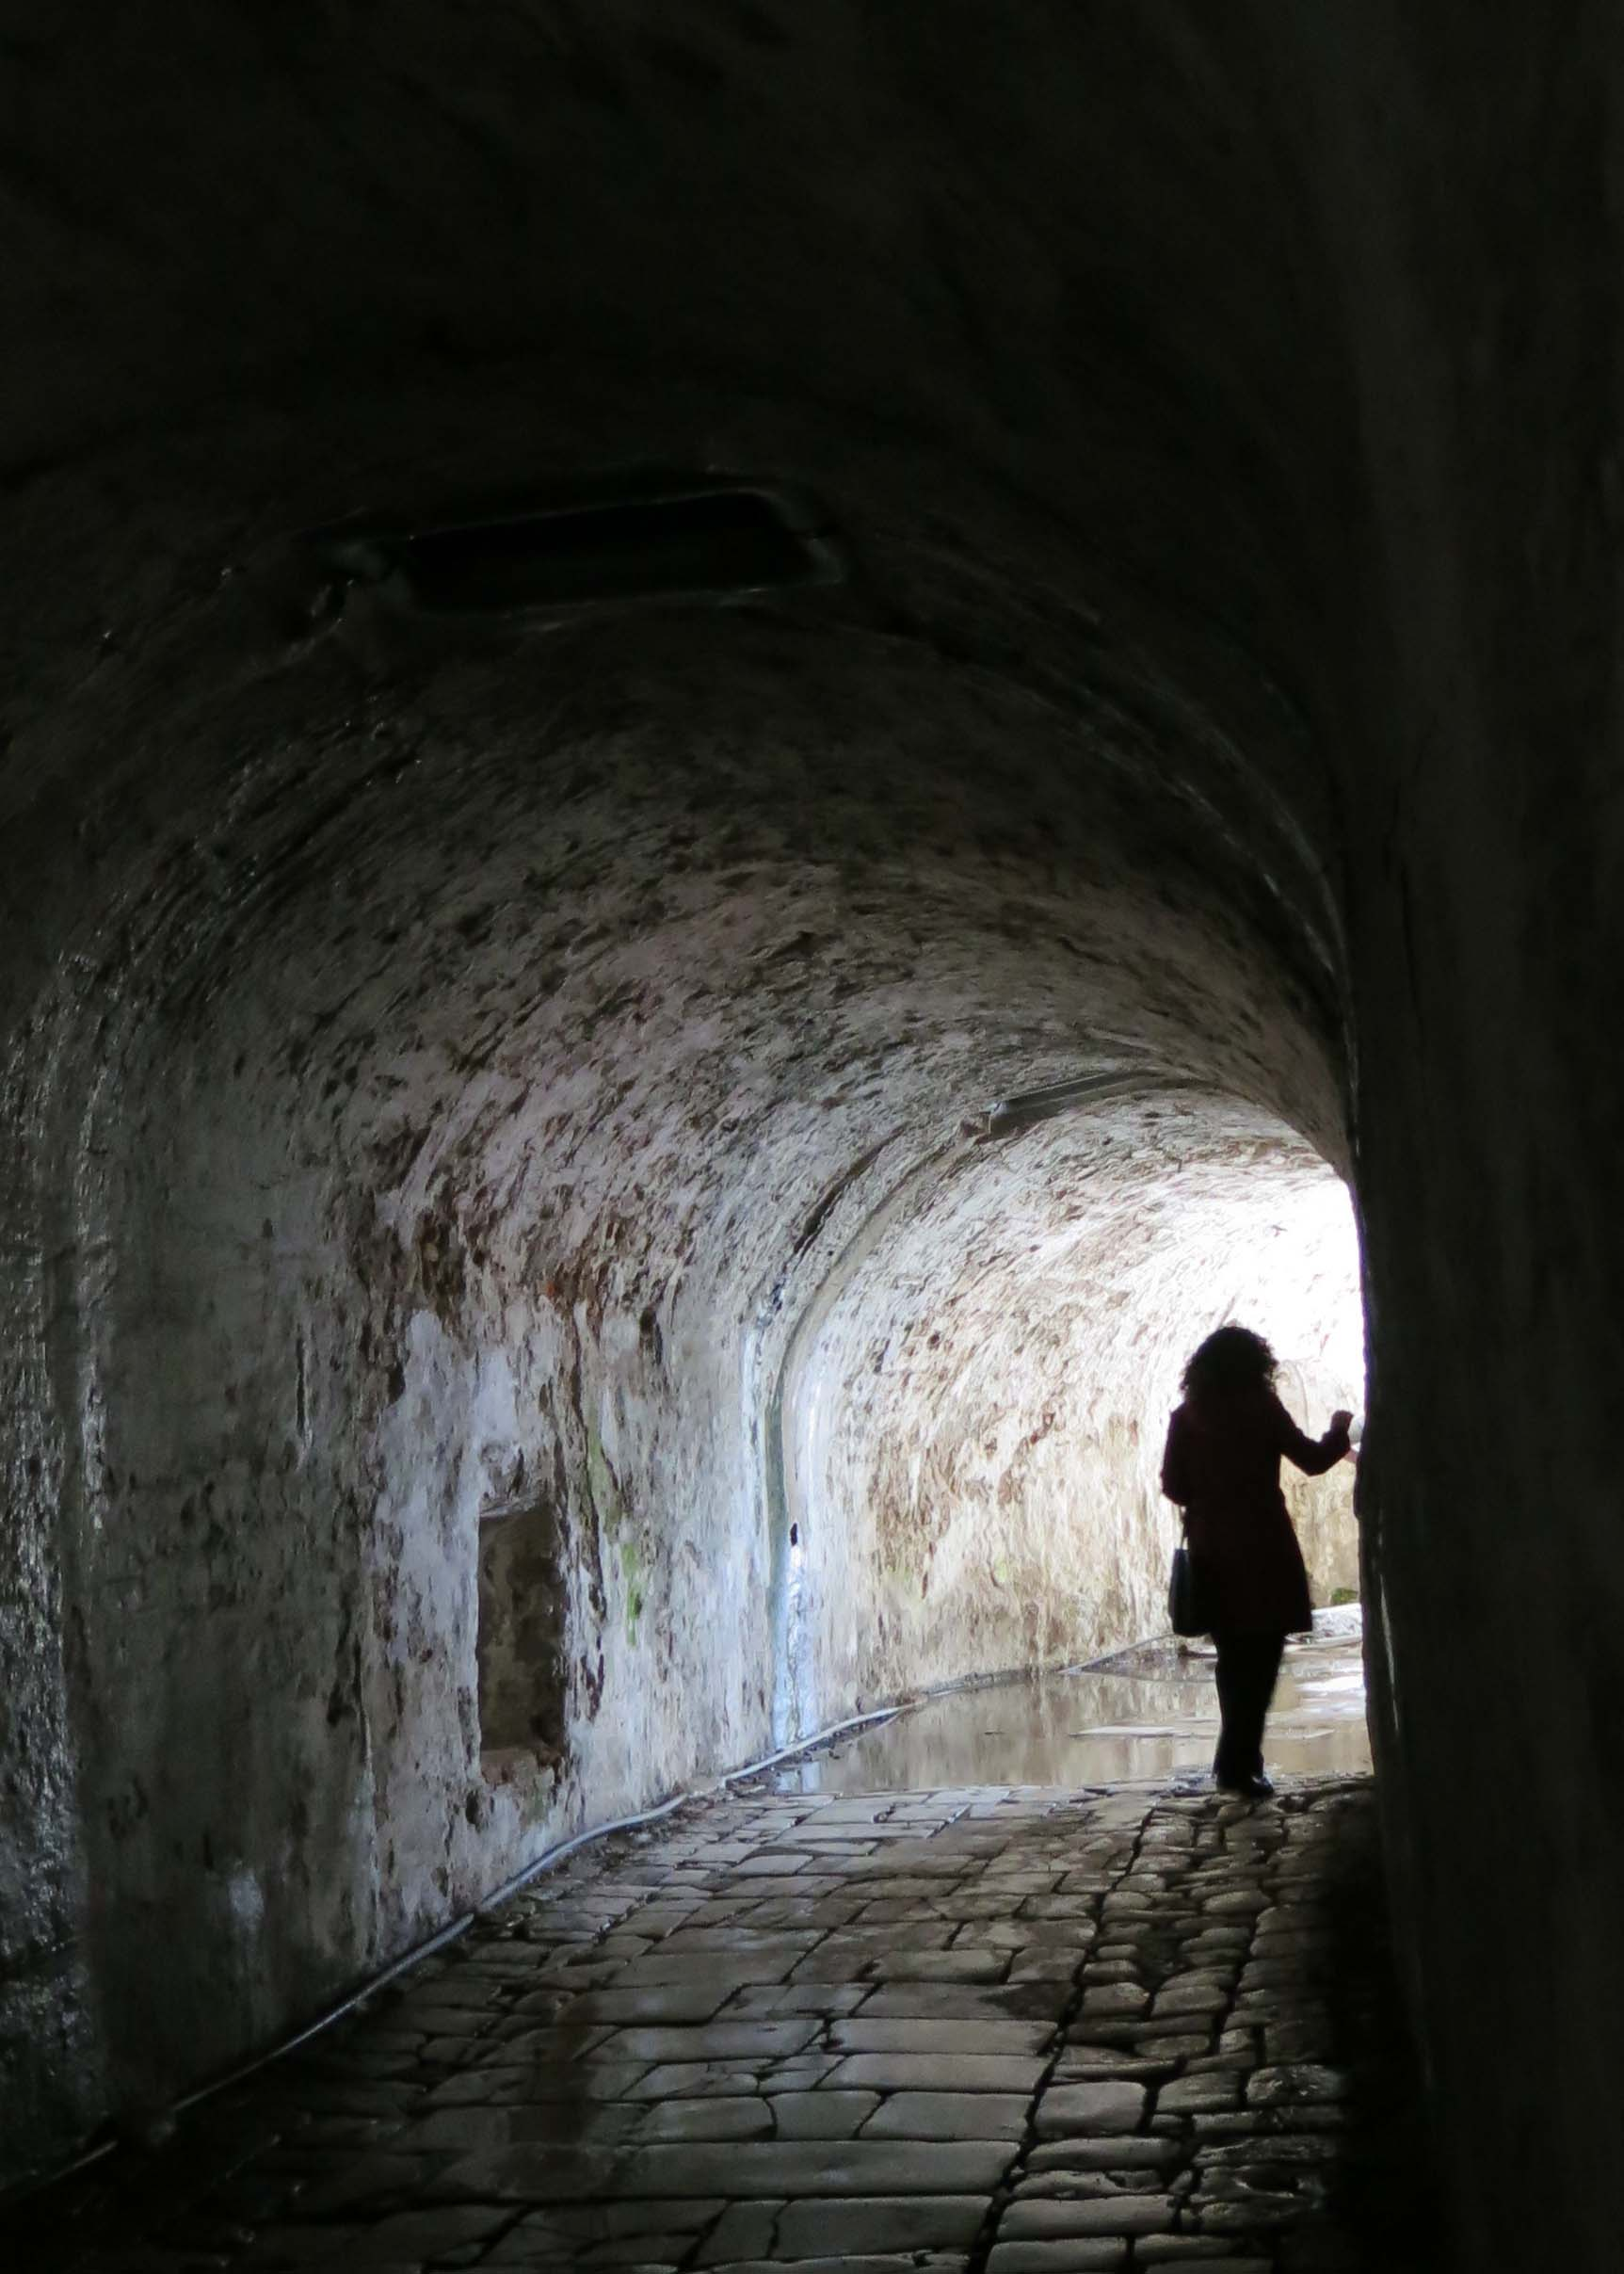 The most magical place for me in Corfu was the Old Fortress. Dating back to ancient times, the Venetians updated it in the Fourteenth Century. In this photo, Kathi Saage walks around a corner of one of the tunnels leading through the fort.